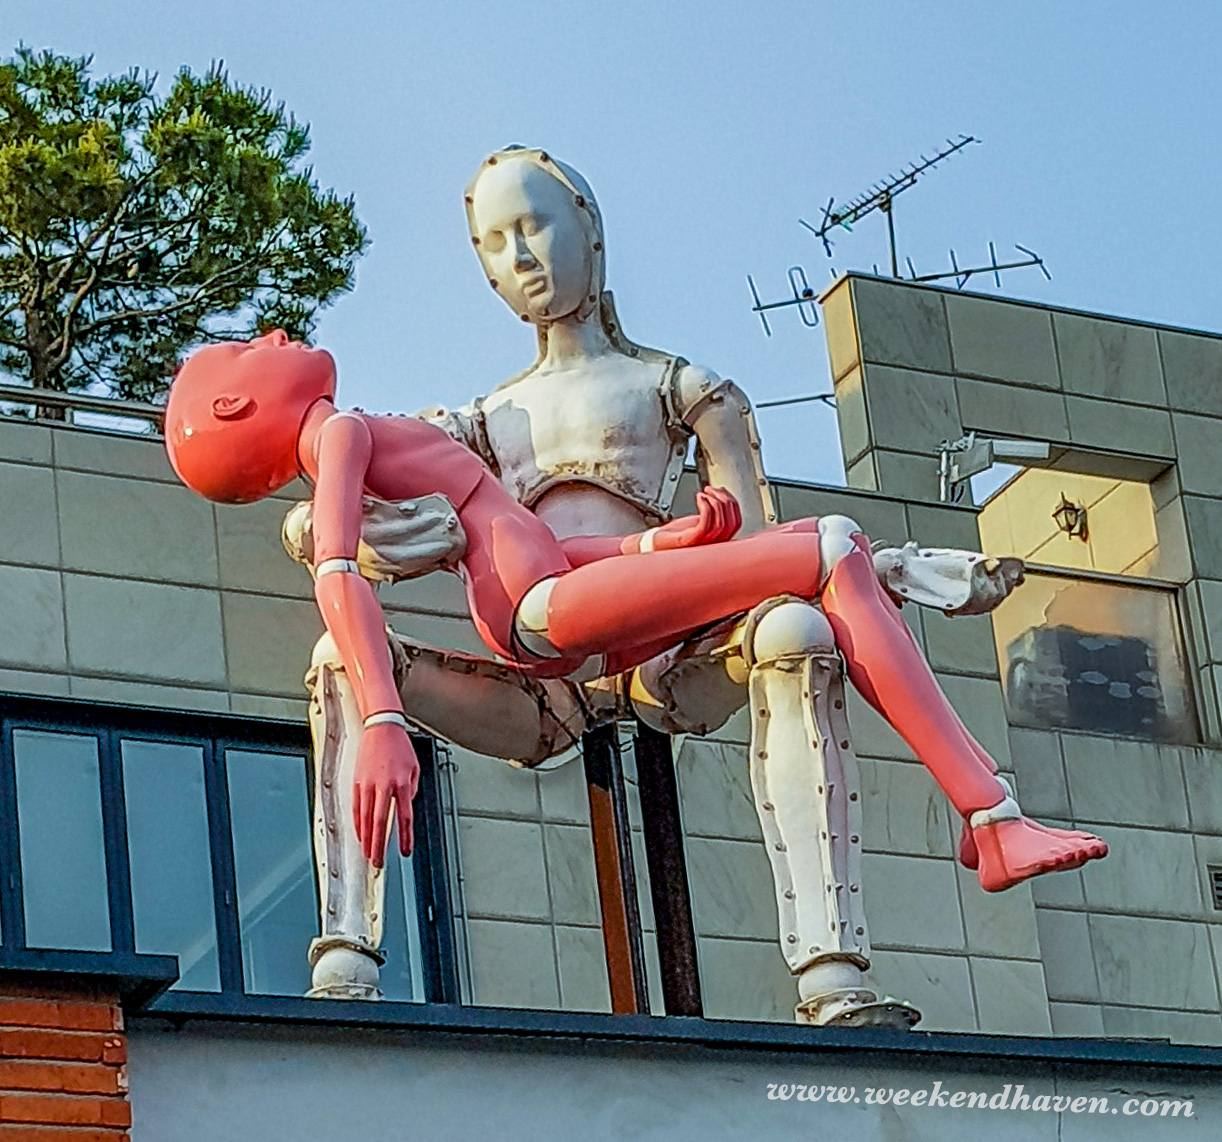 Samcheongdong-gil Art Installations